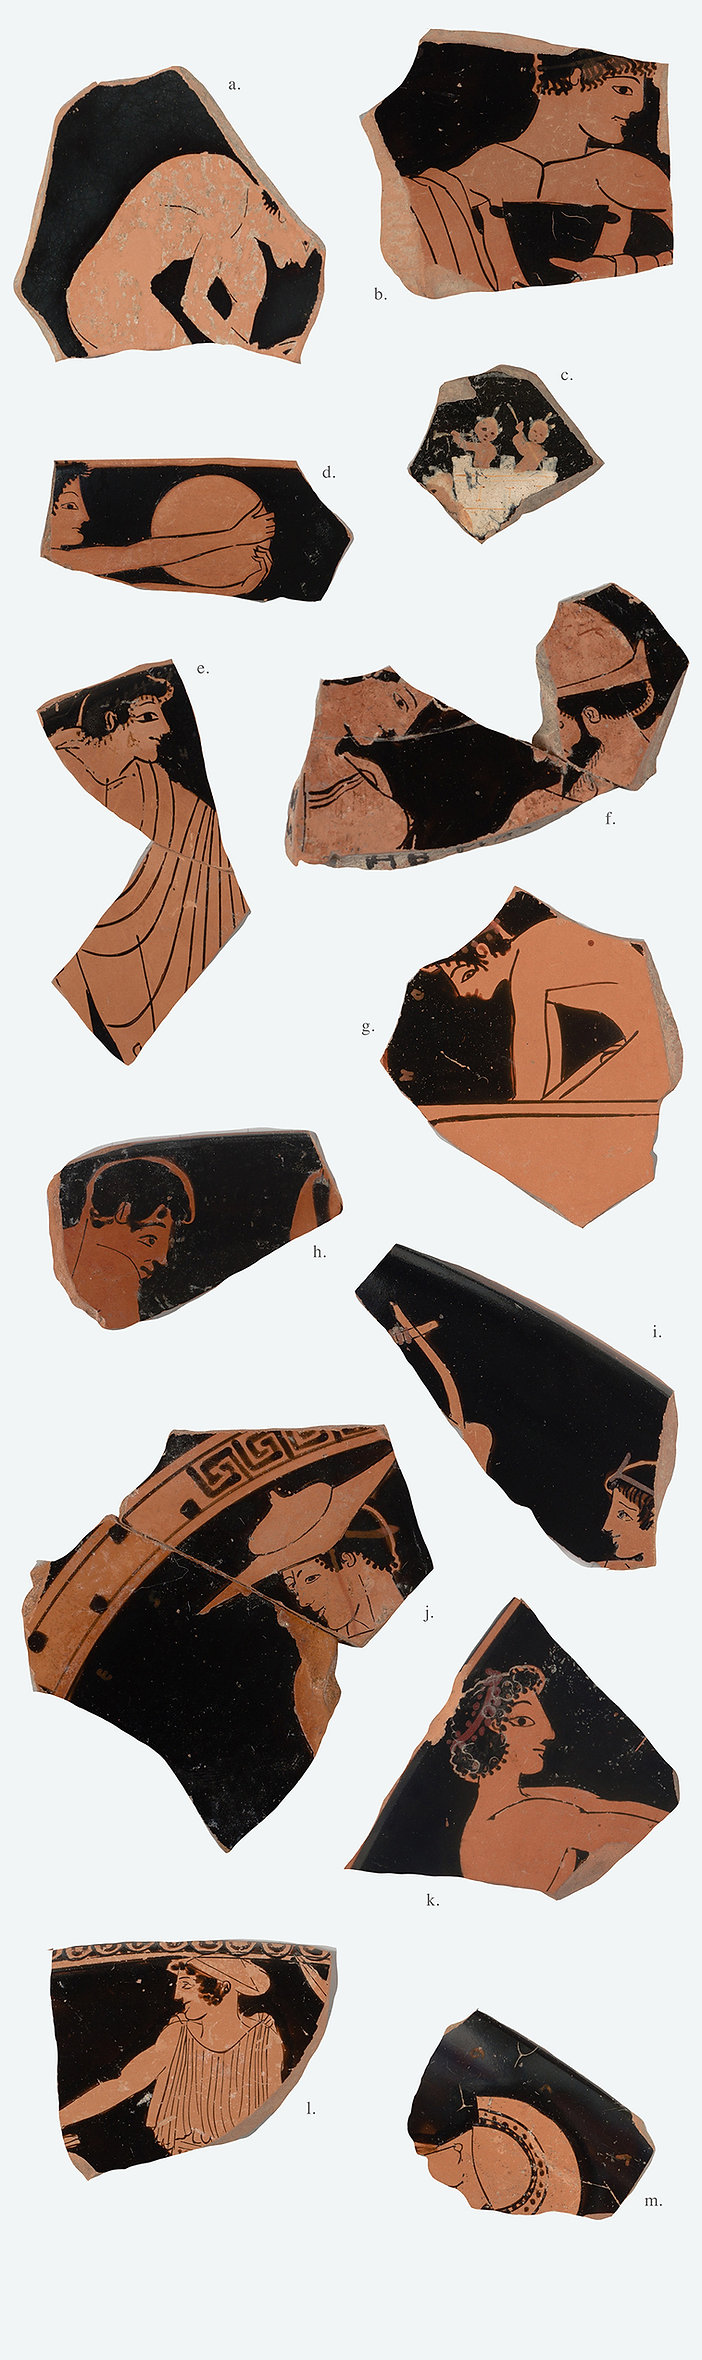 Kylix Faces Collection.jpg